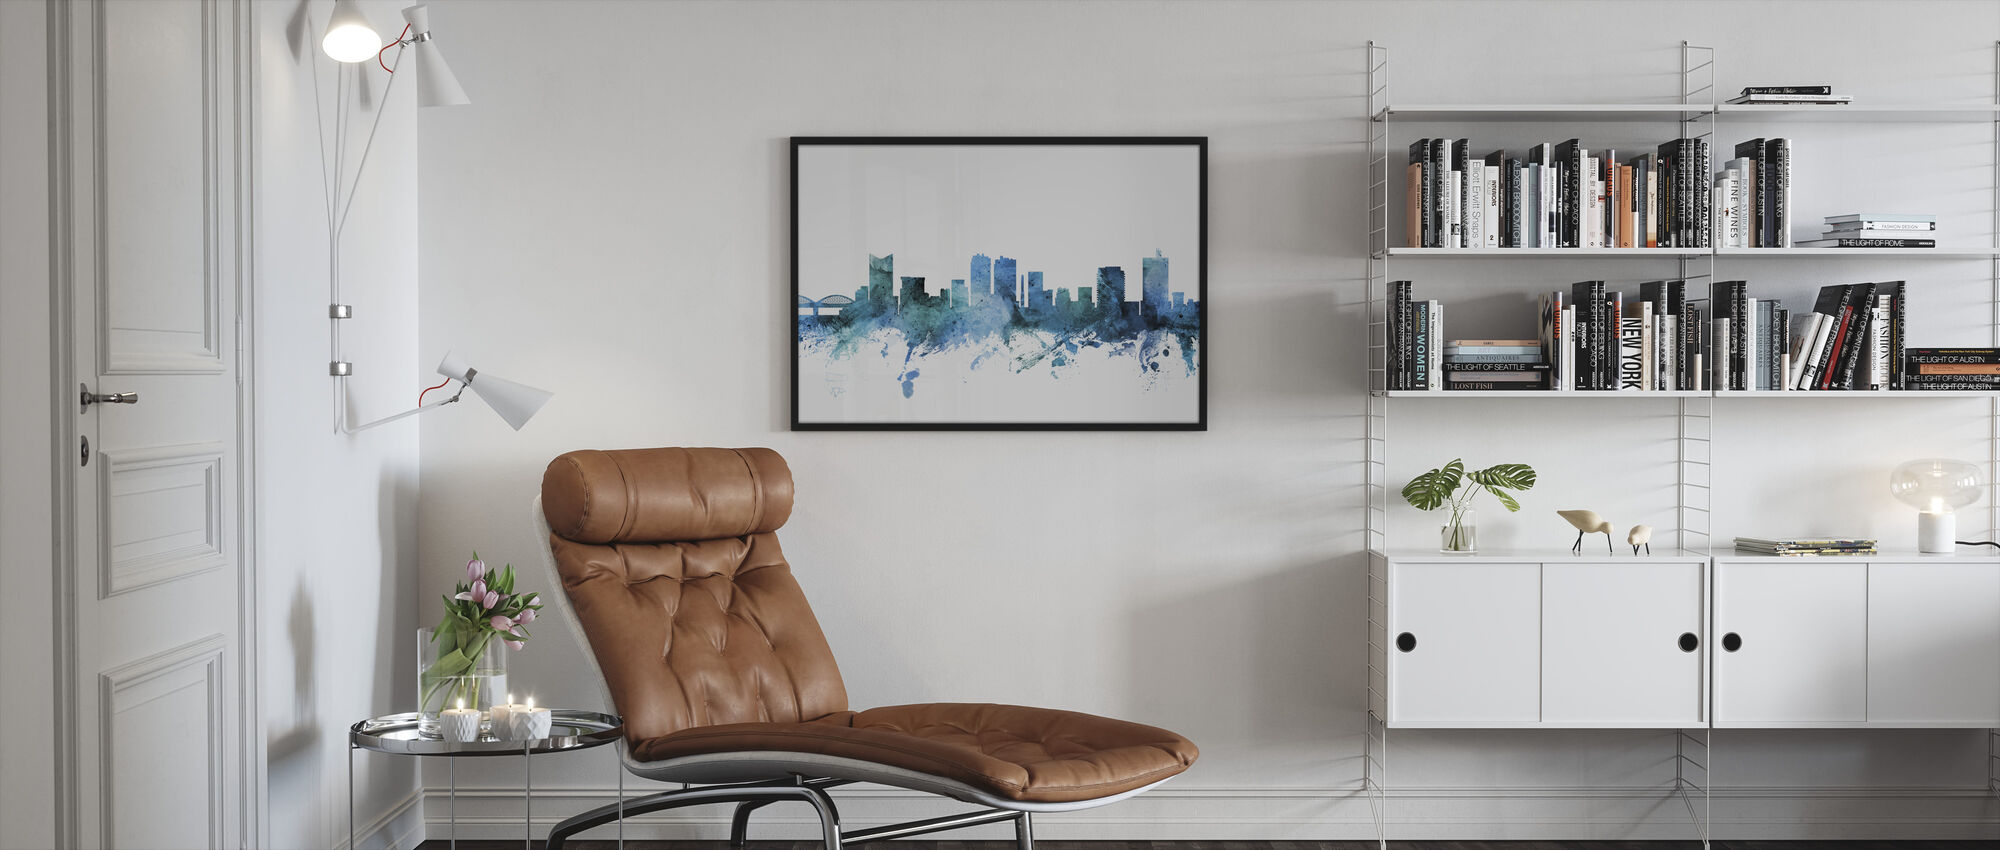 Fort Worth Texas Skyline - Framed print - Living Room